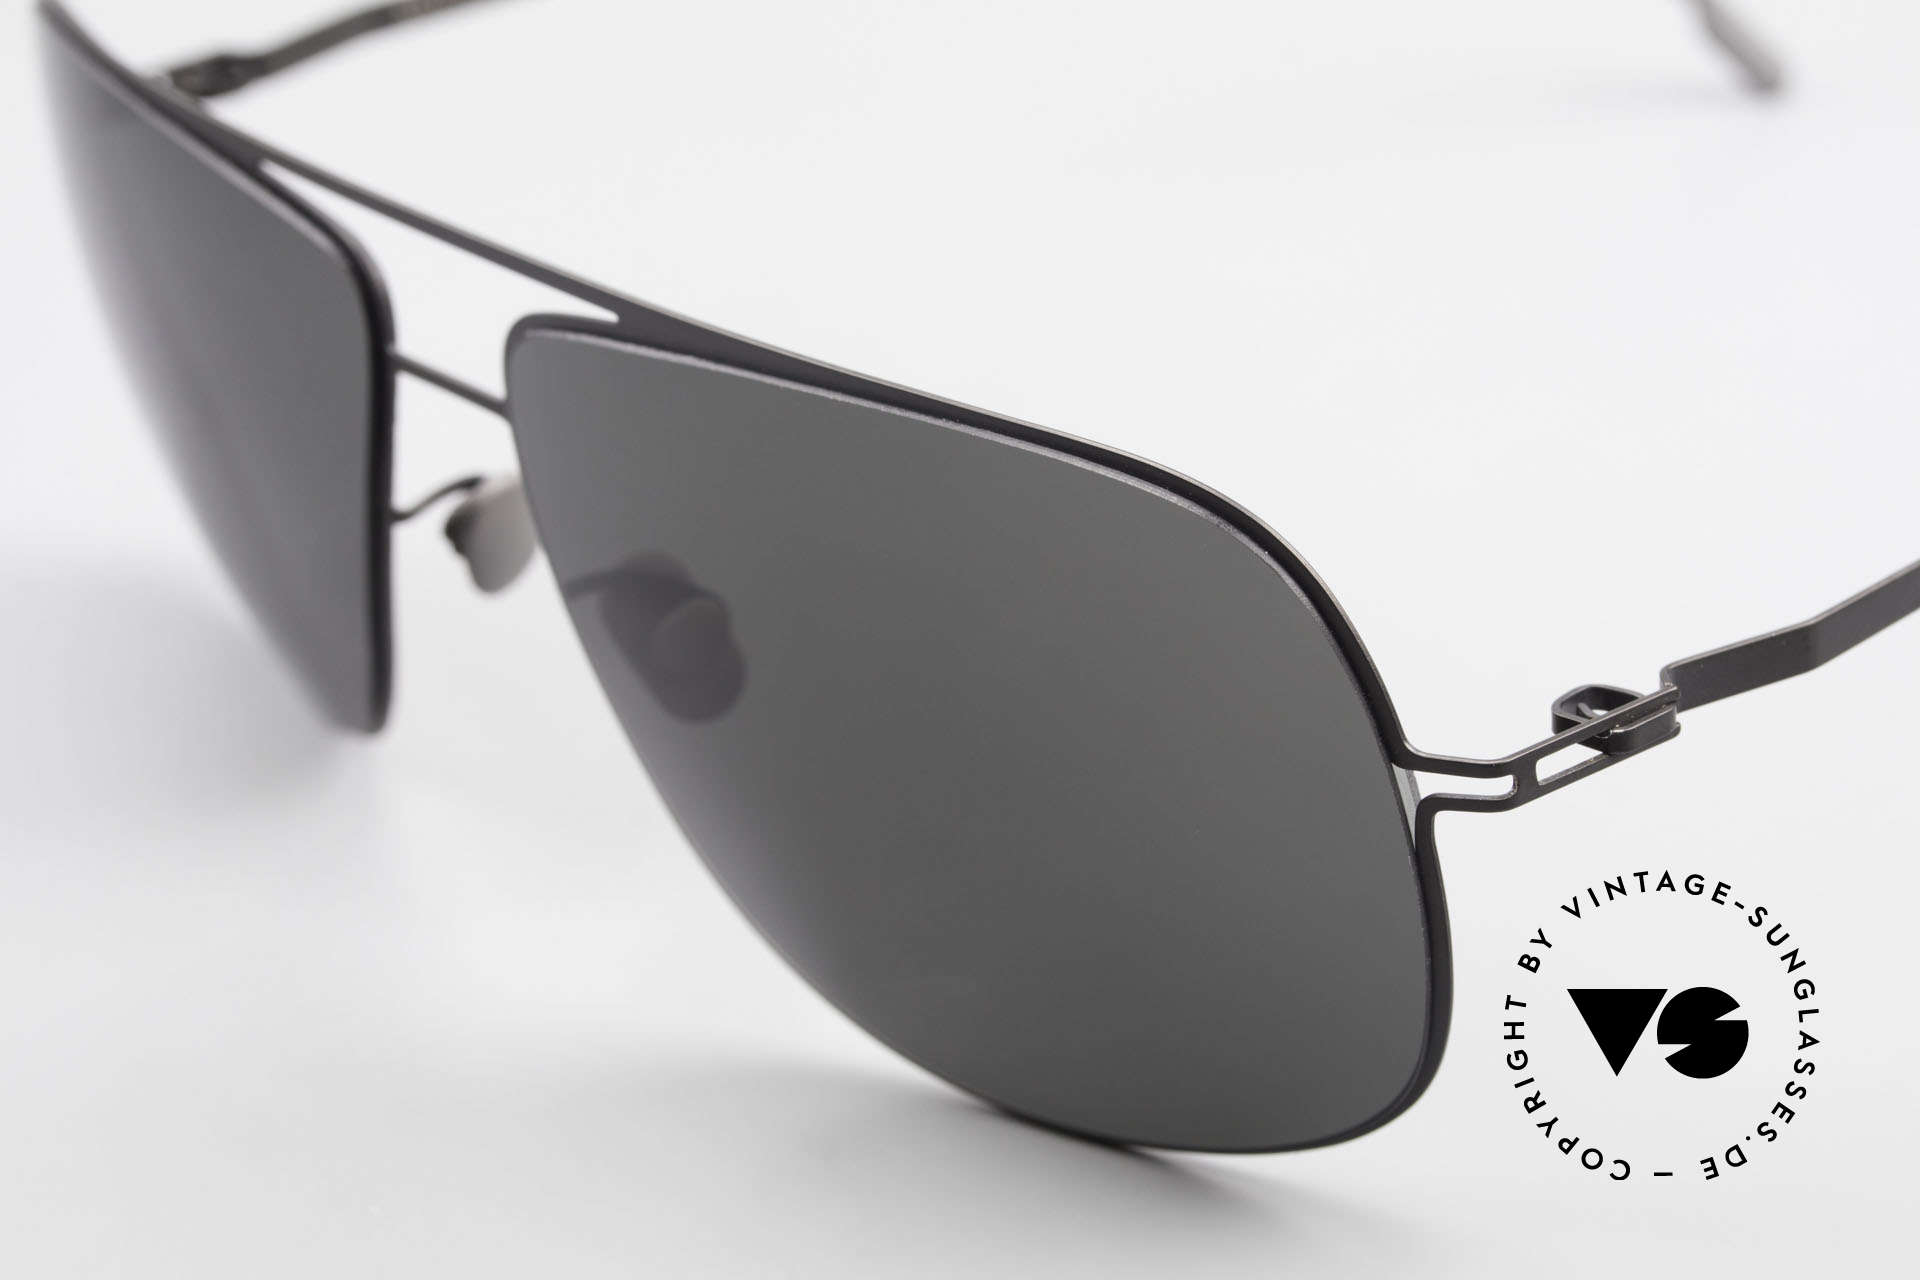 Mykita Jon Lite Metal Designer Sunglasses, innovative and flexible metal frame = One size fits all!, Made for Men and Women